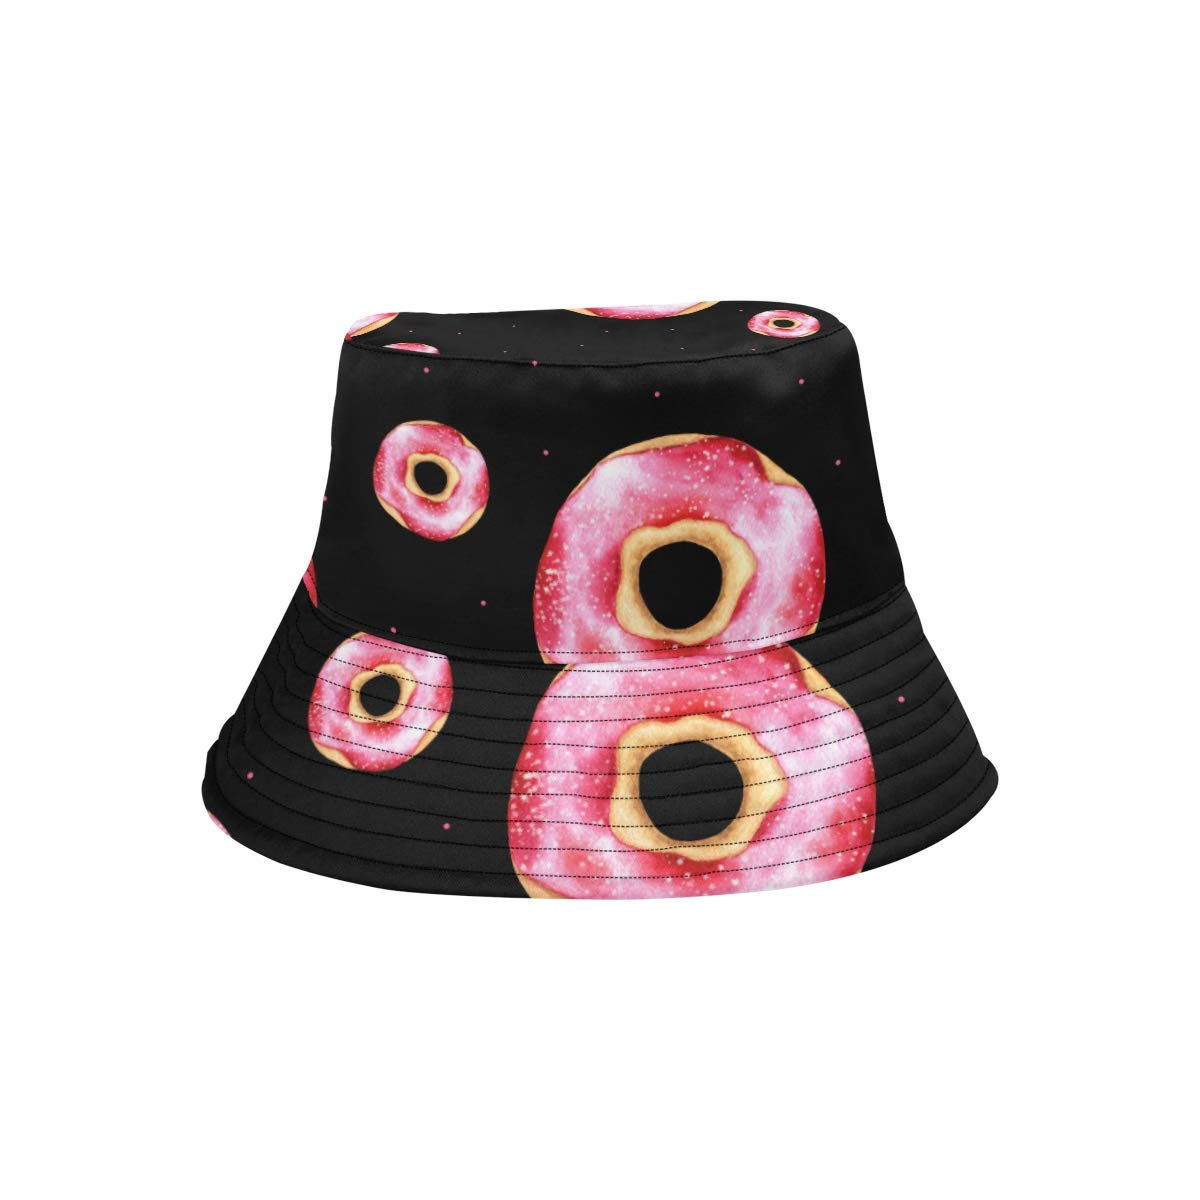 Yummy Cartoon Donut Planet New Summer Unisex Cotton Fashion Fishing Sun Bucket Hats for Kid Women and Men with Customize Top Packable Fisherman Cap for Outdoor Travel Teens